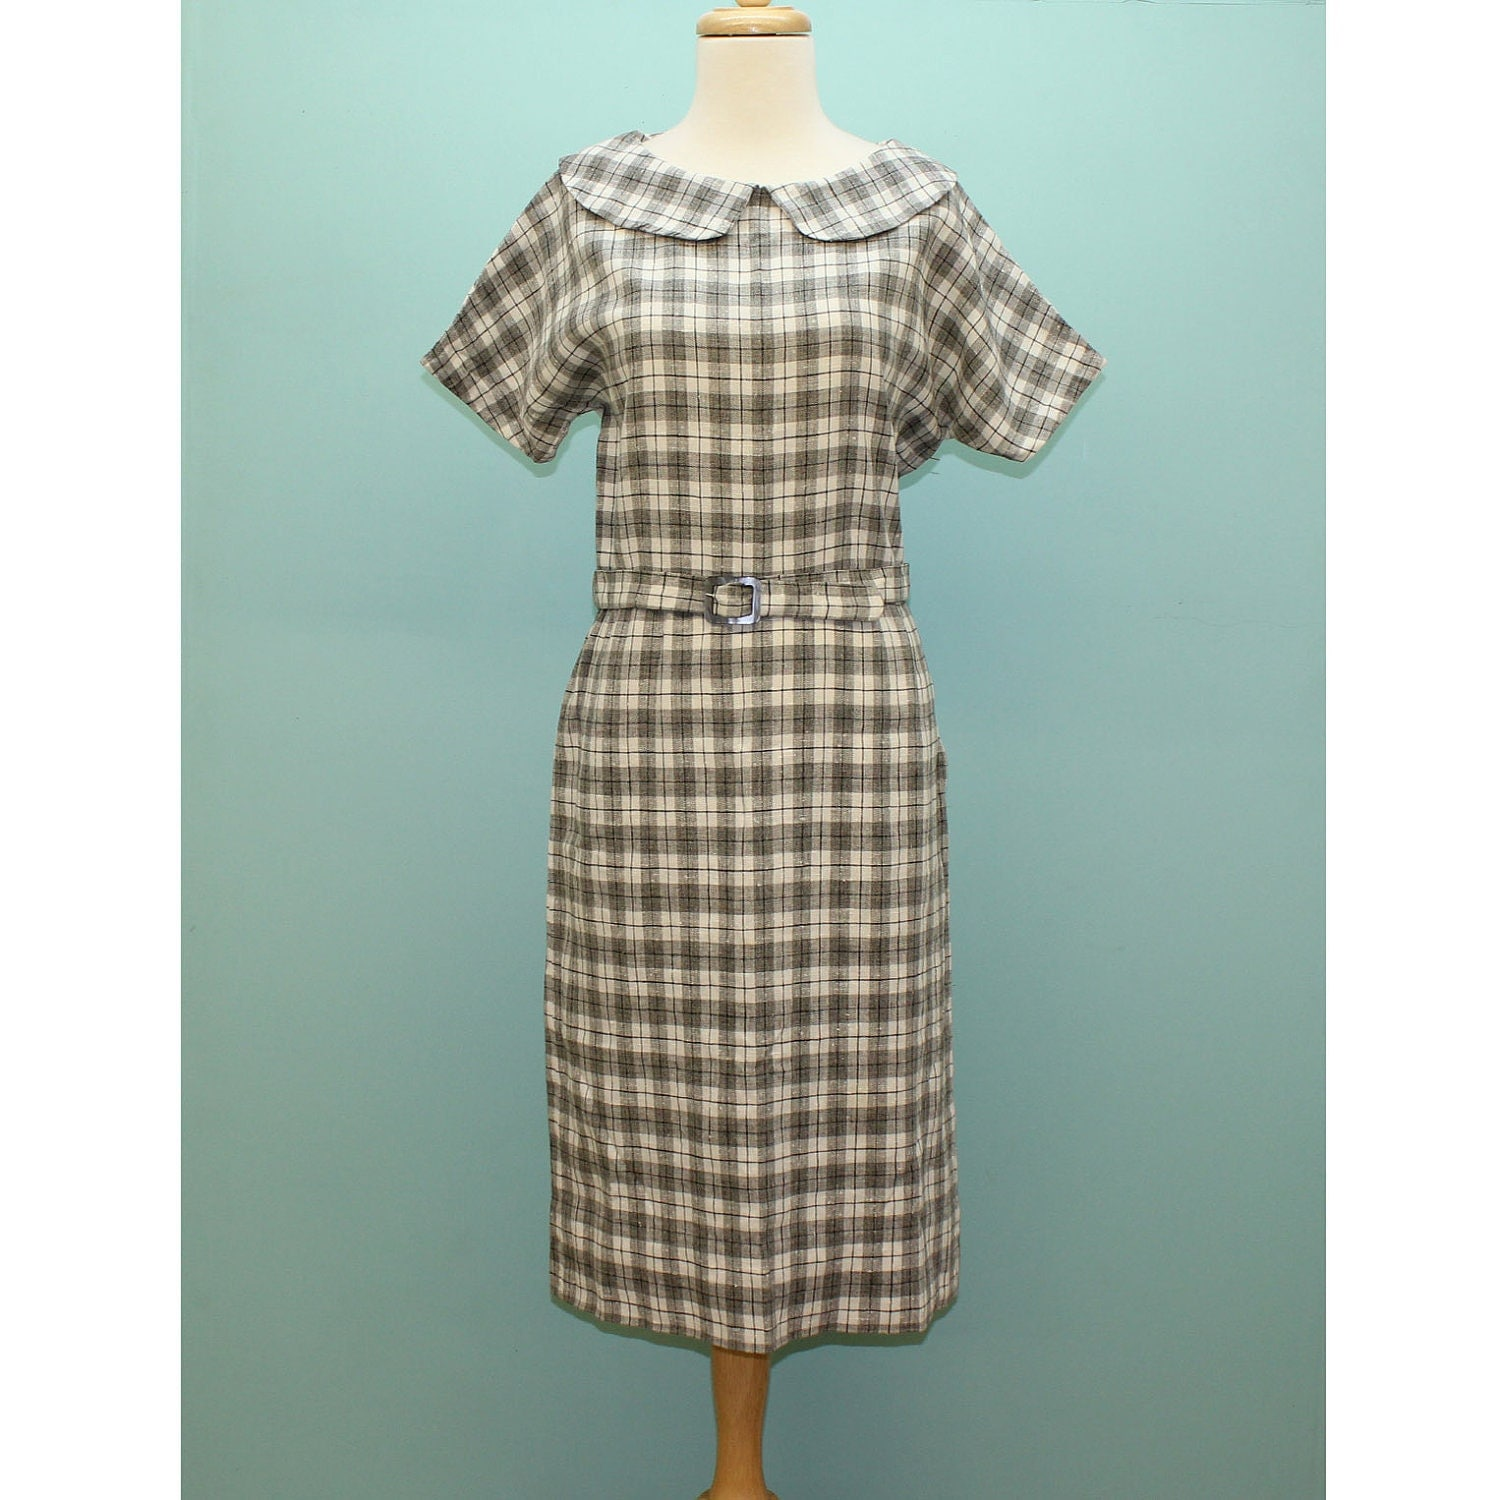 60's Plaid Linen Belted Shirtwaist Dress - Medium to Large